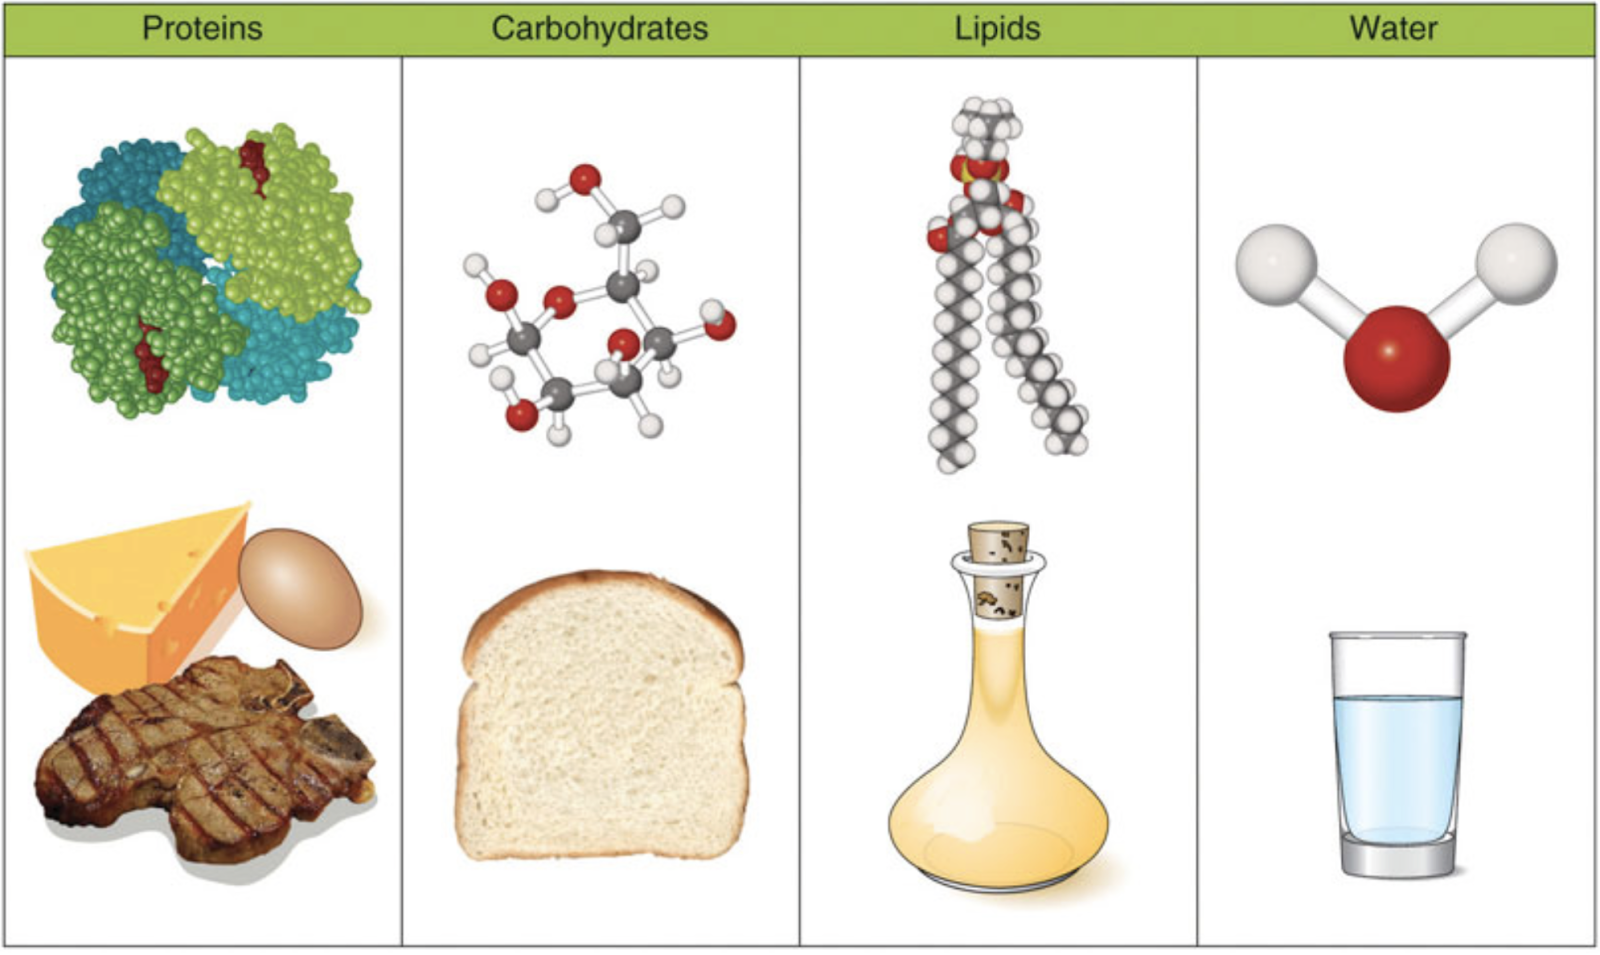 This image shows the chemical structure of each macronutrient along with typical food sources. Cheese, eggs and meat are shown for protein, bread for carbohydrates, oil for lipids and a glass of water for water.